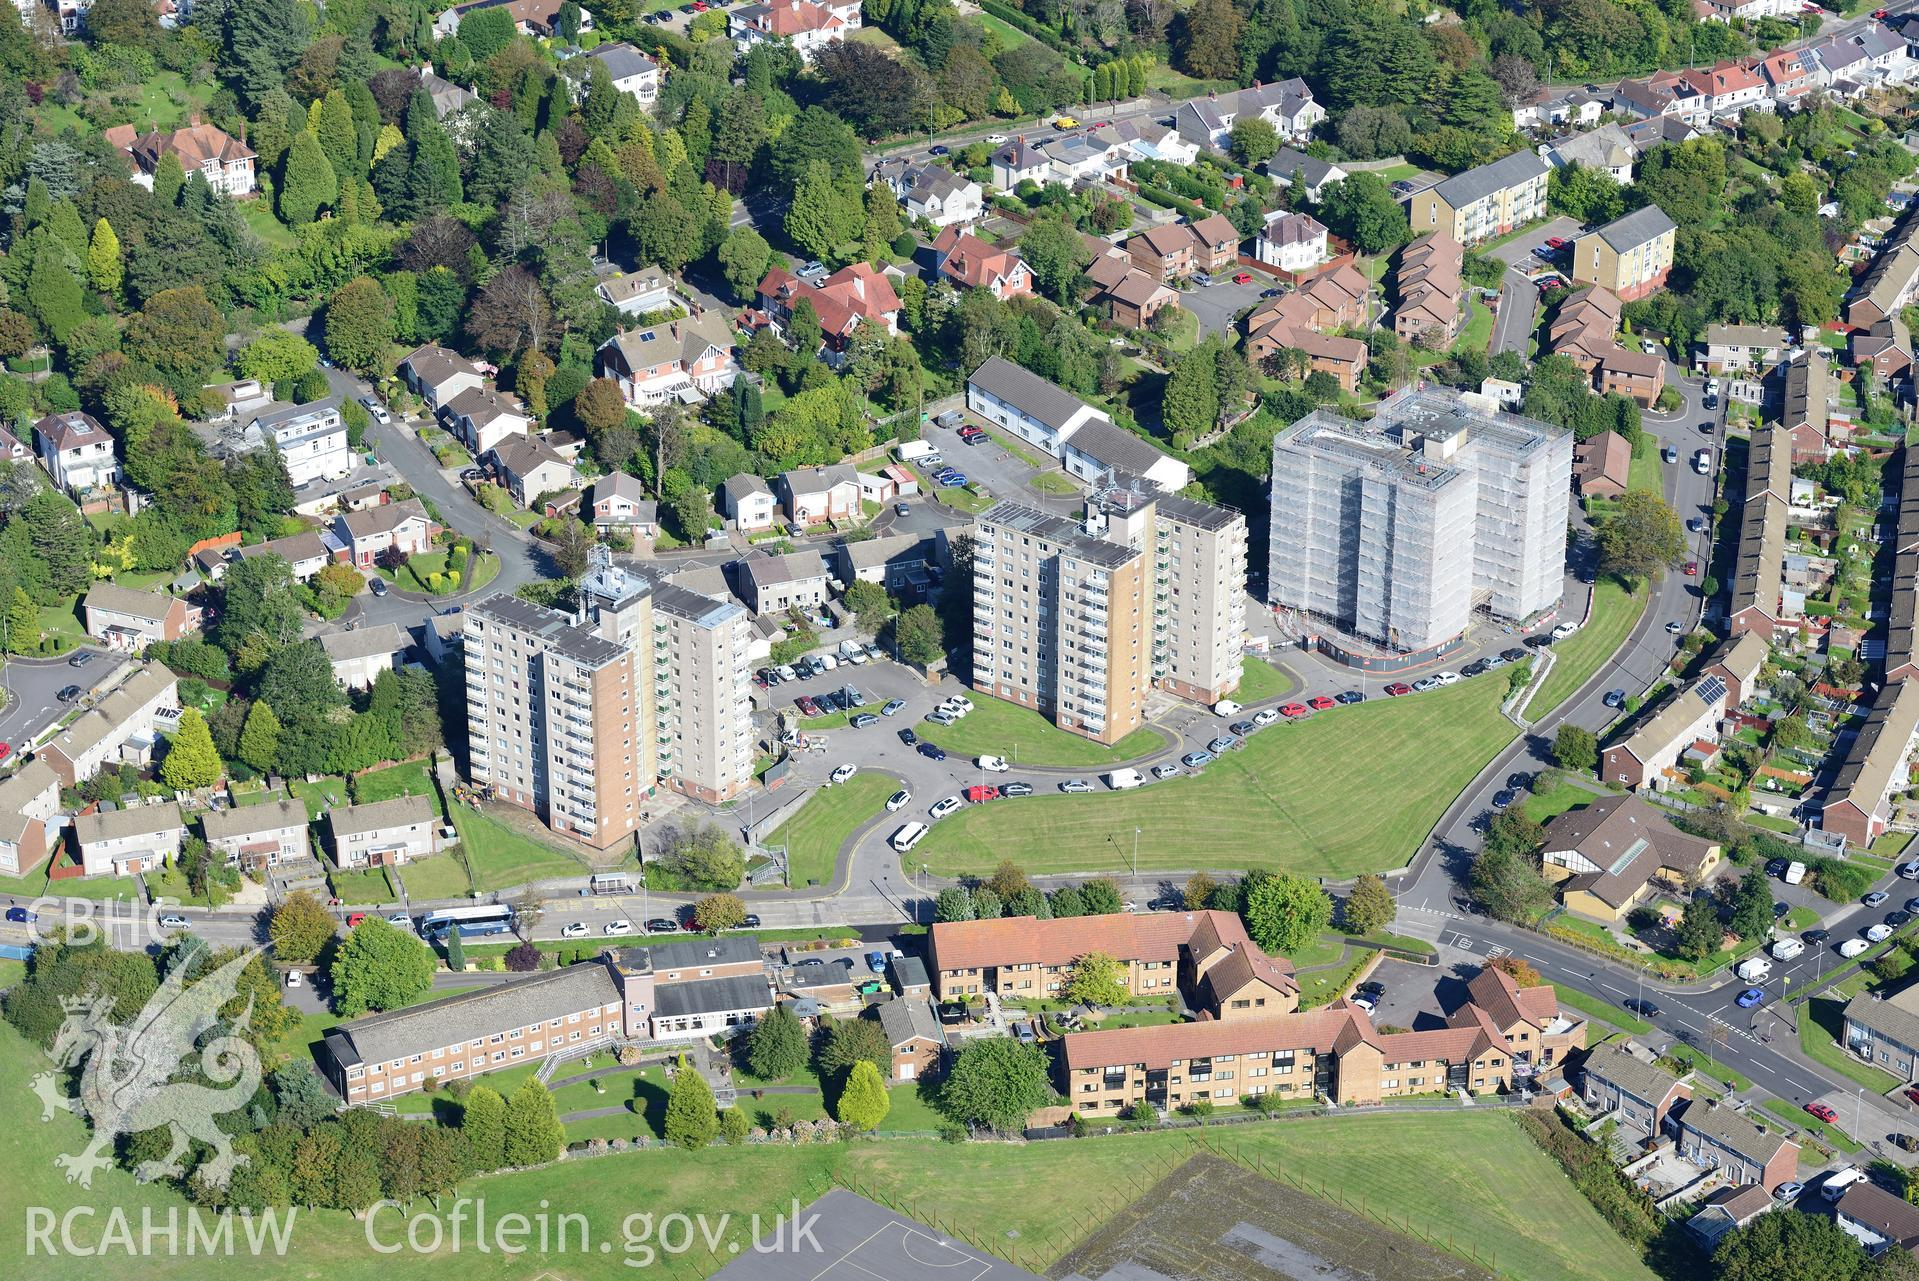 Clyne Court tower blocks, Sketty, Swansea. Oblique aerial photograph taken during the Royal Commission's programme of archaeological aerial reconnaissance by Toby Driver on 30th September 2015.